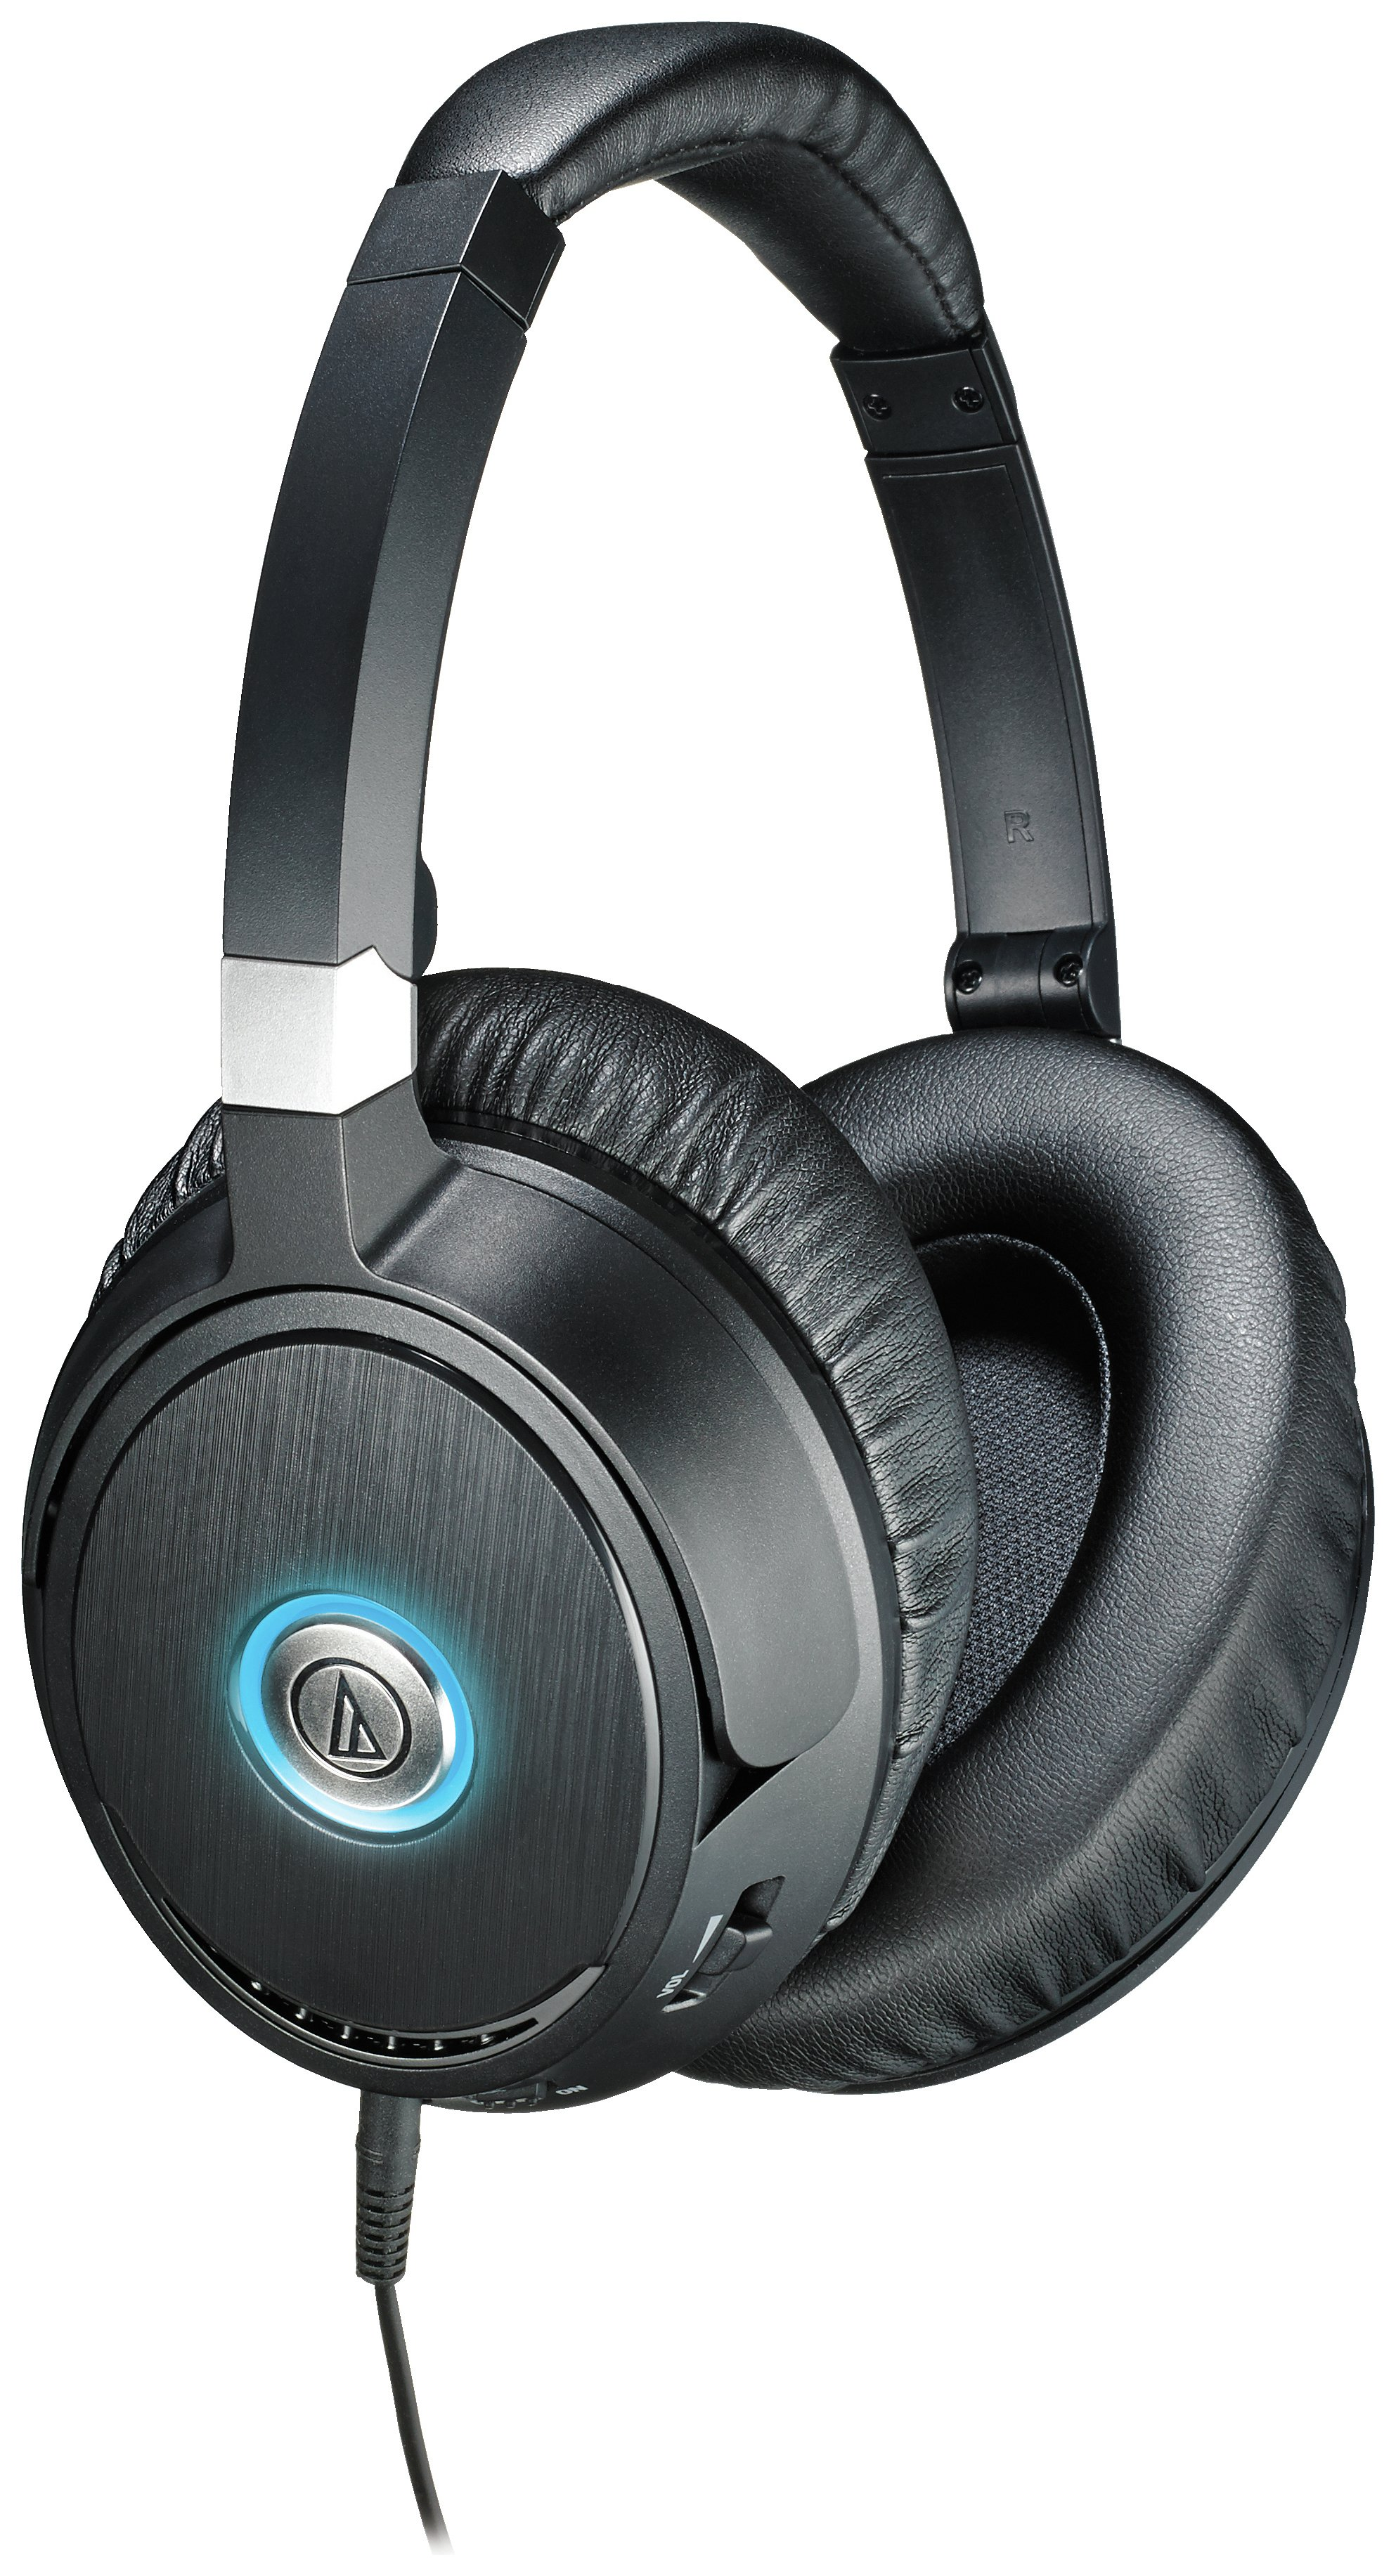 Image of Audio Technica ATH-ANC70 NC On-Ear Headphones - Black.